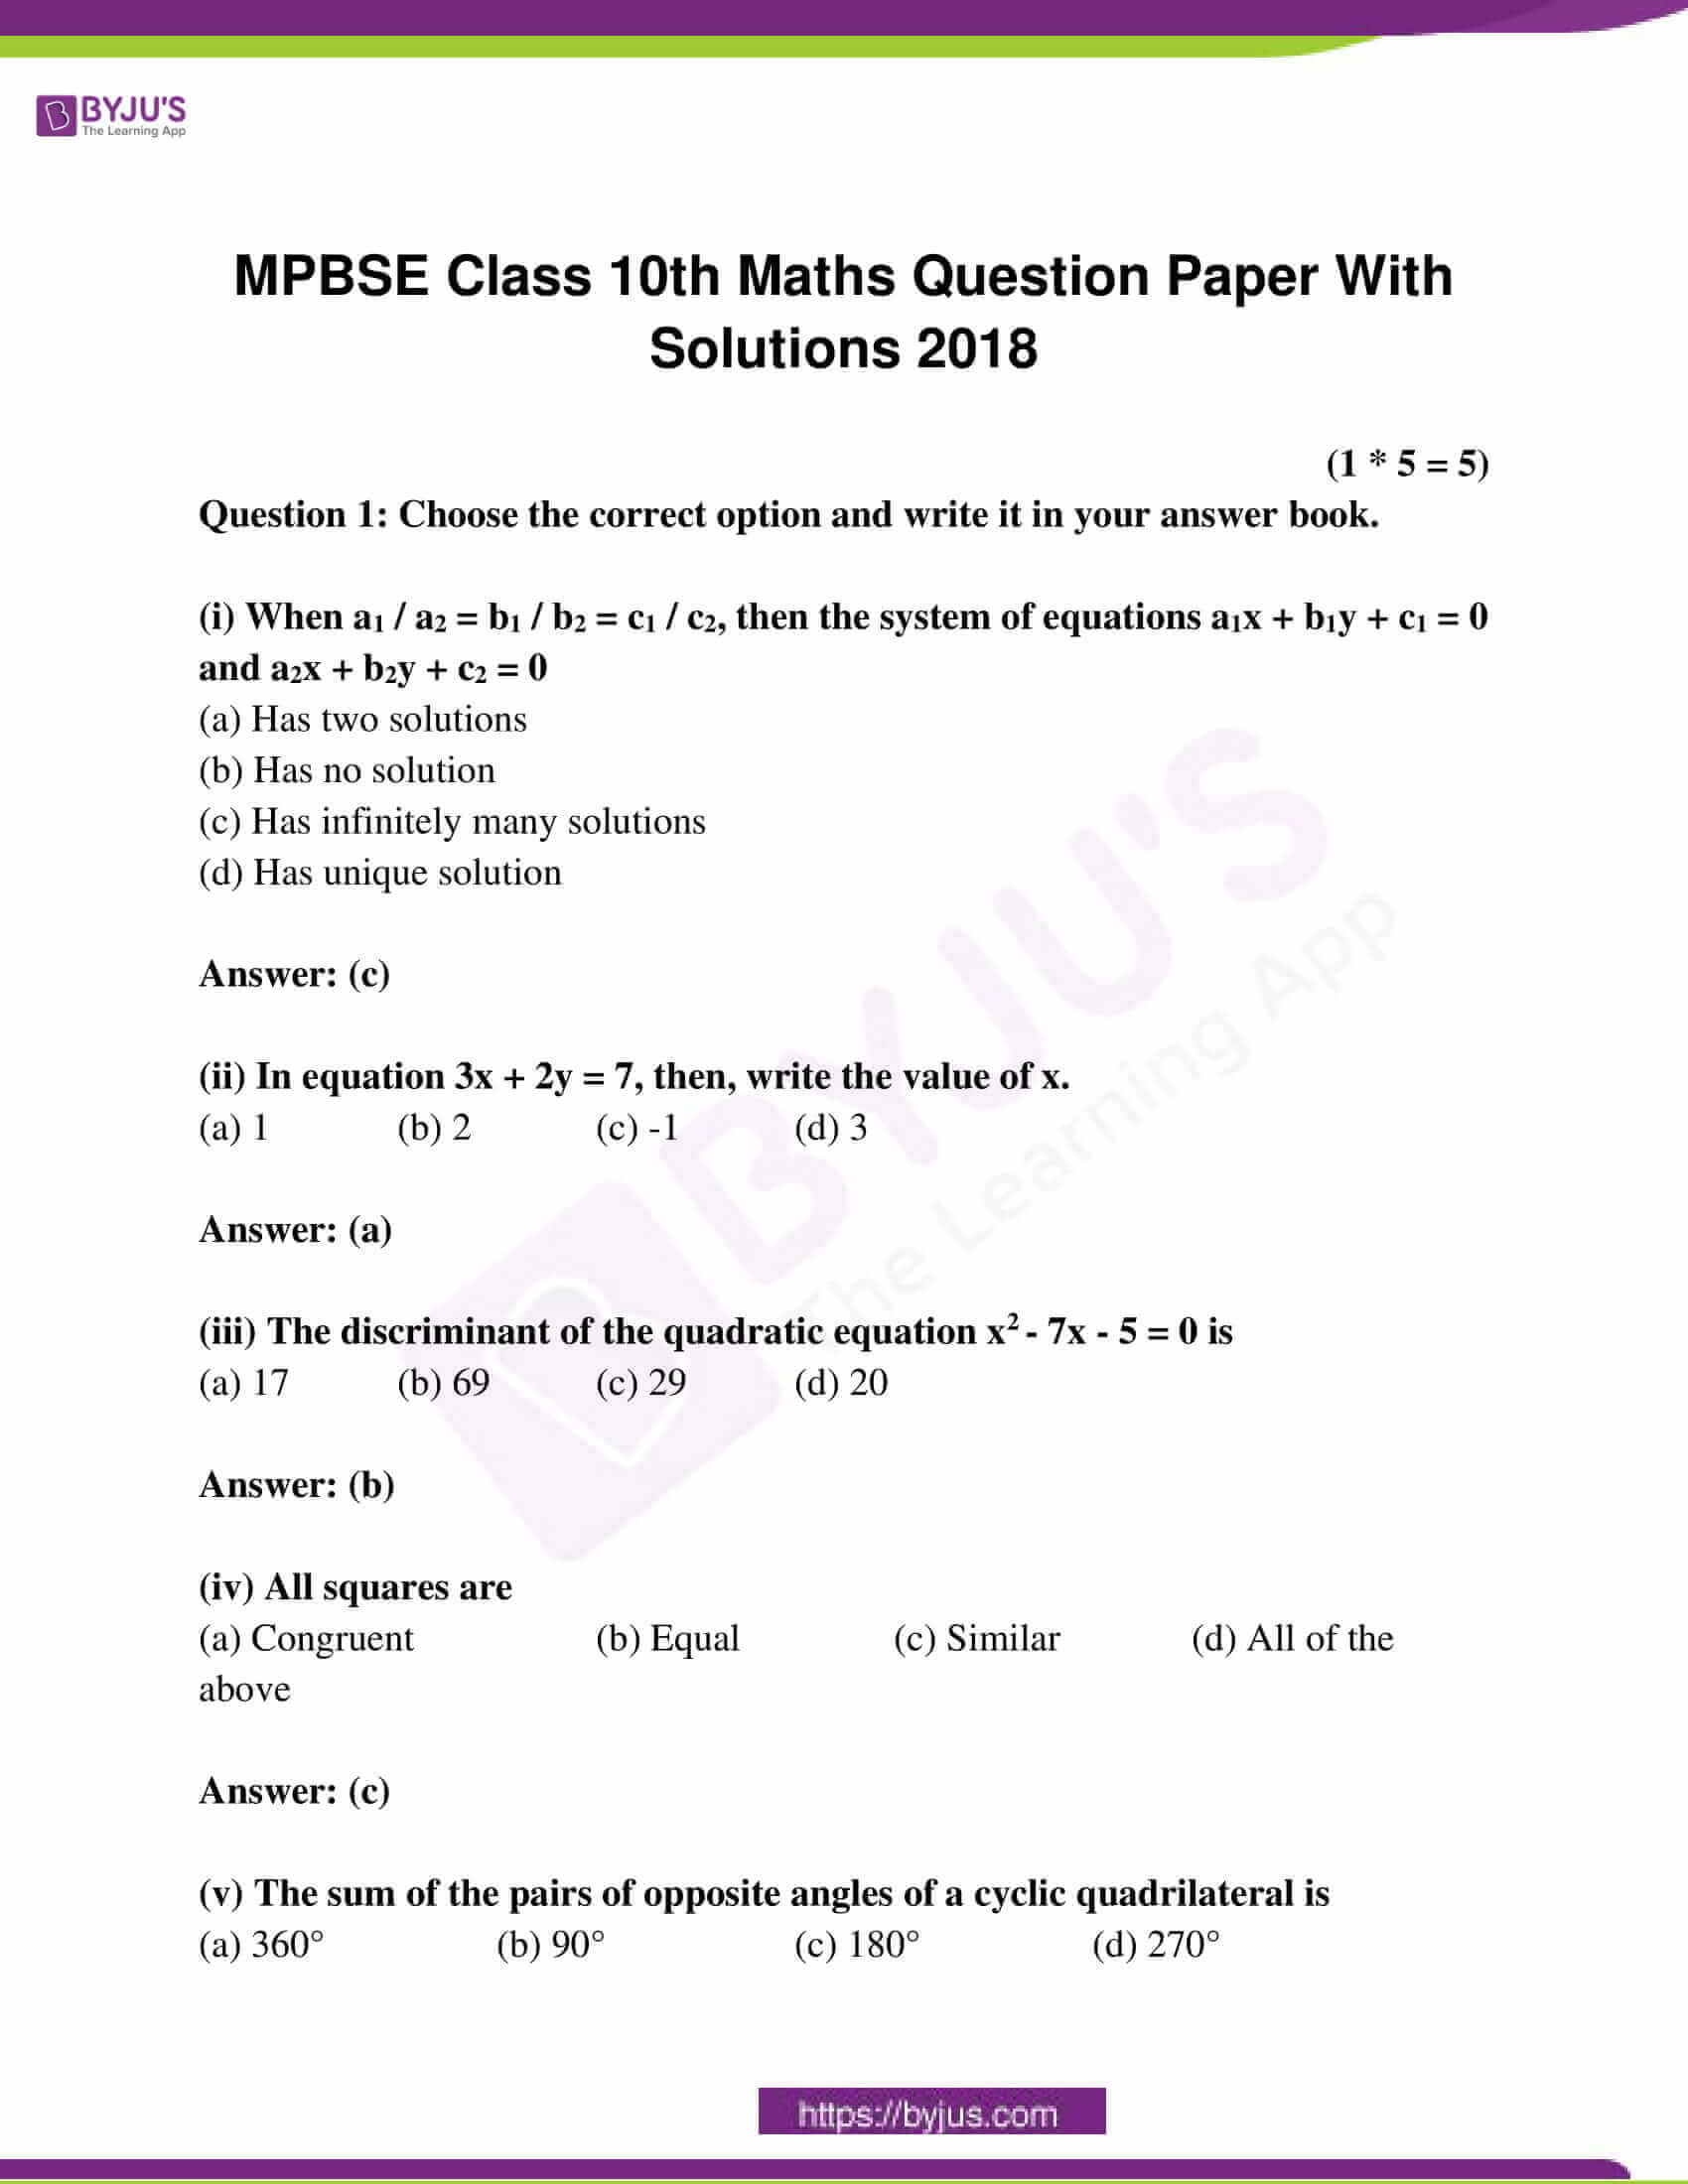 mp class 10 exam question paper with solutions march 2018 01